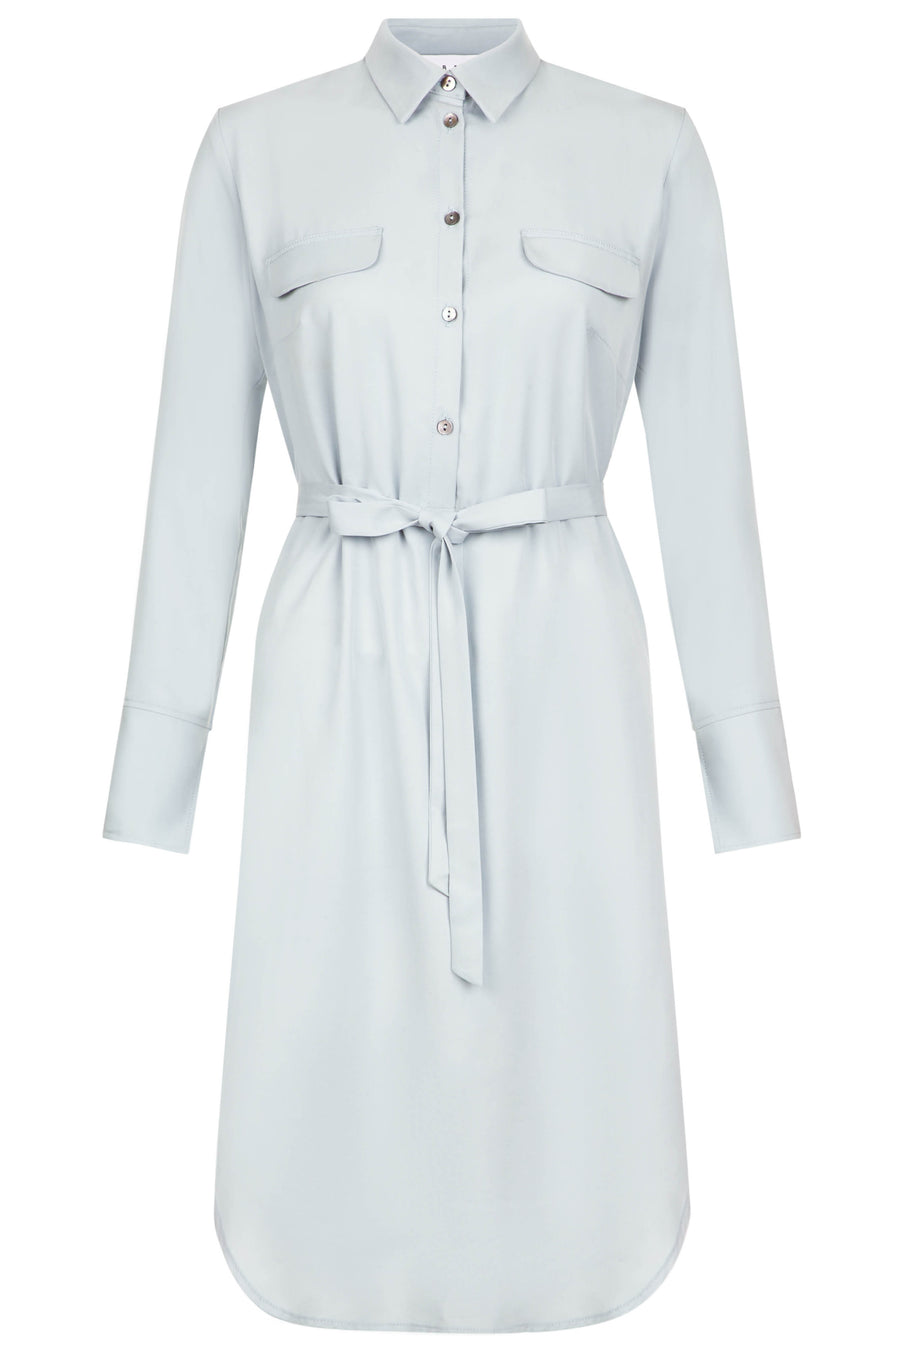 Suffolk Cornflower Blue Shirt Dress